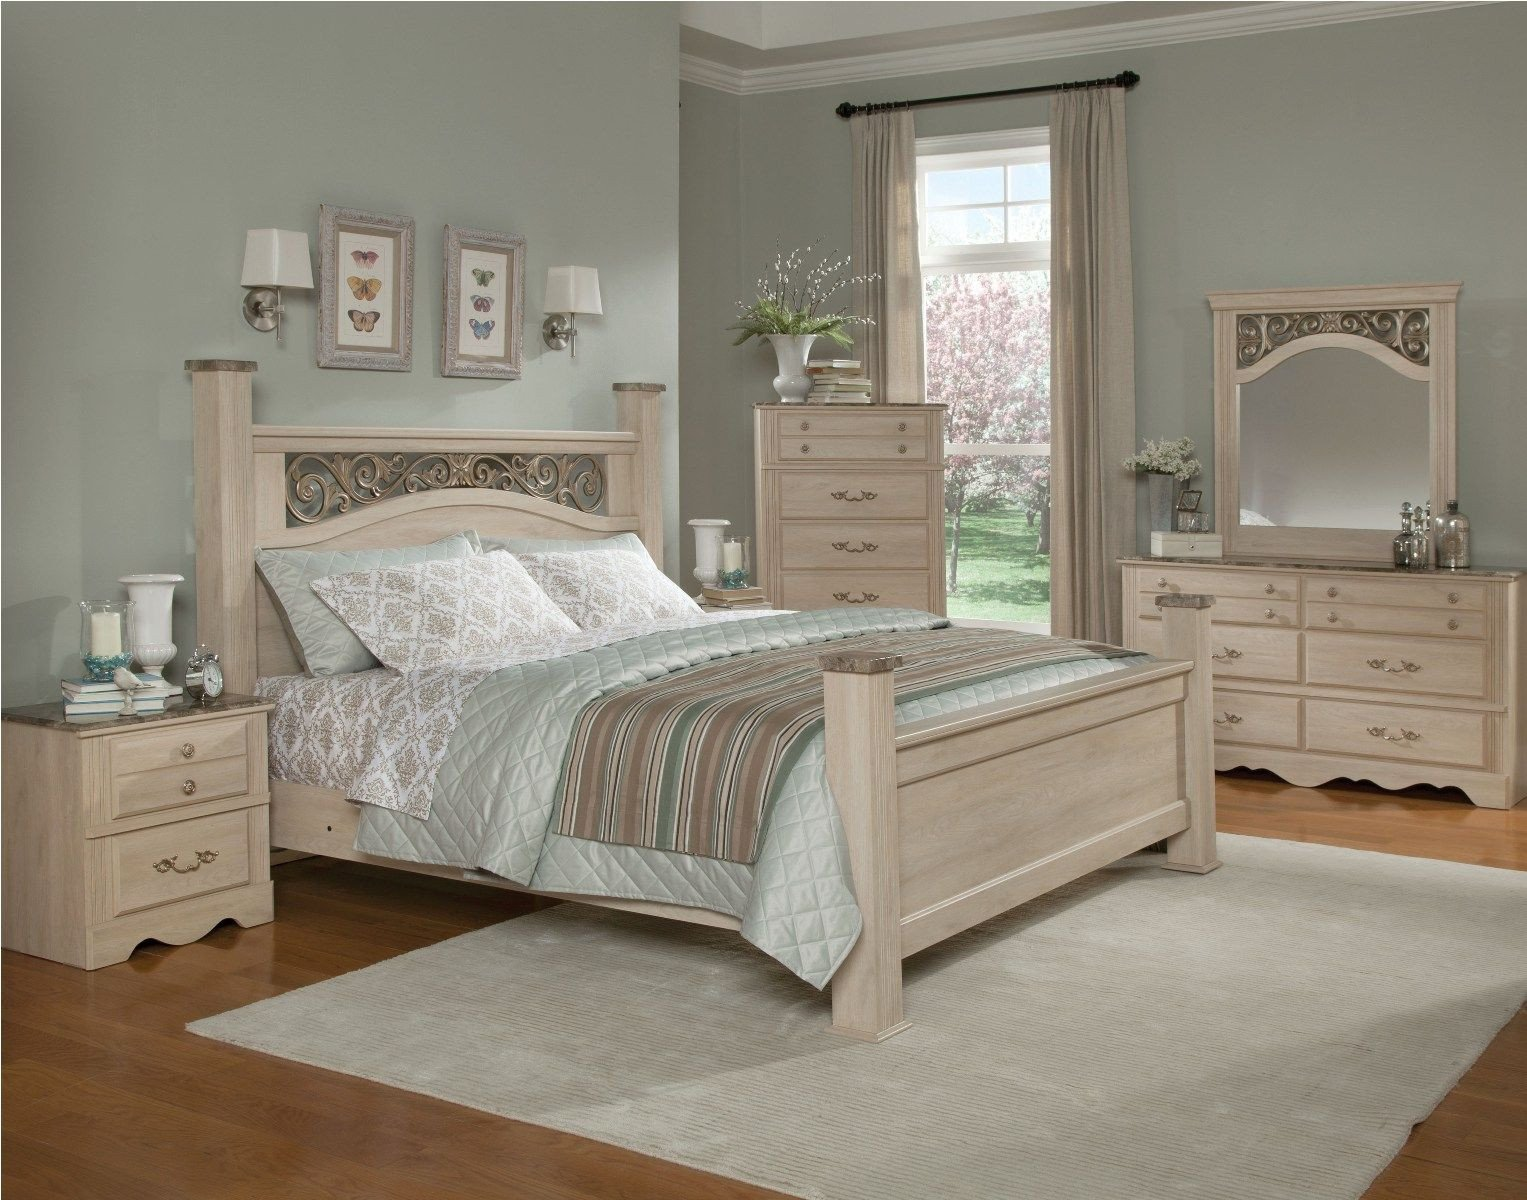 Best Deals On Bedroom Set Lovely Standard Furniture torina Poster Bedroom Set In Light Cream